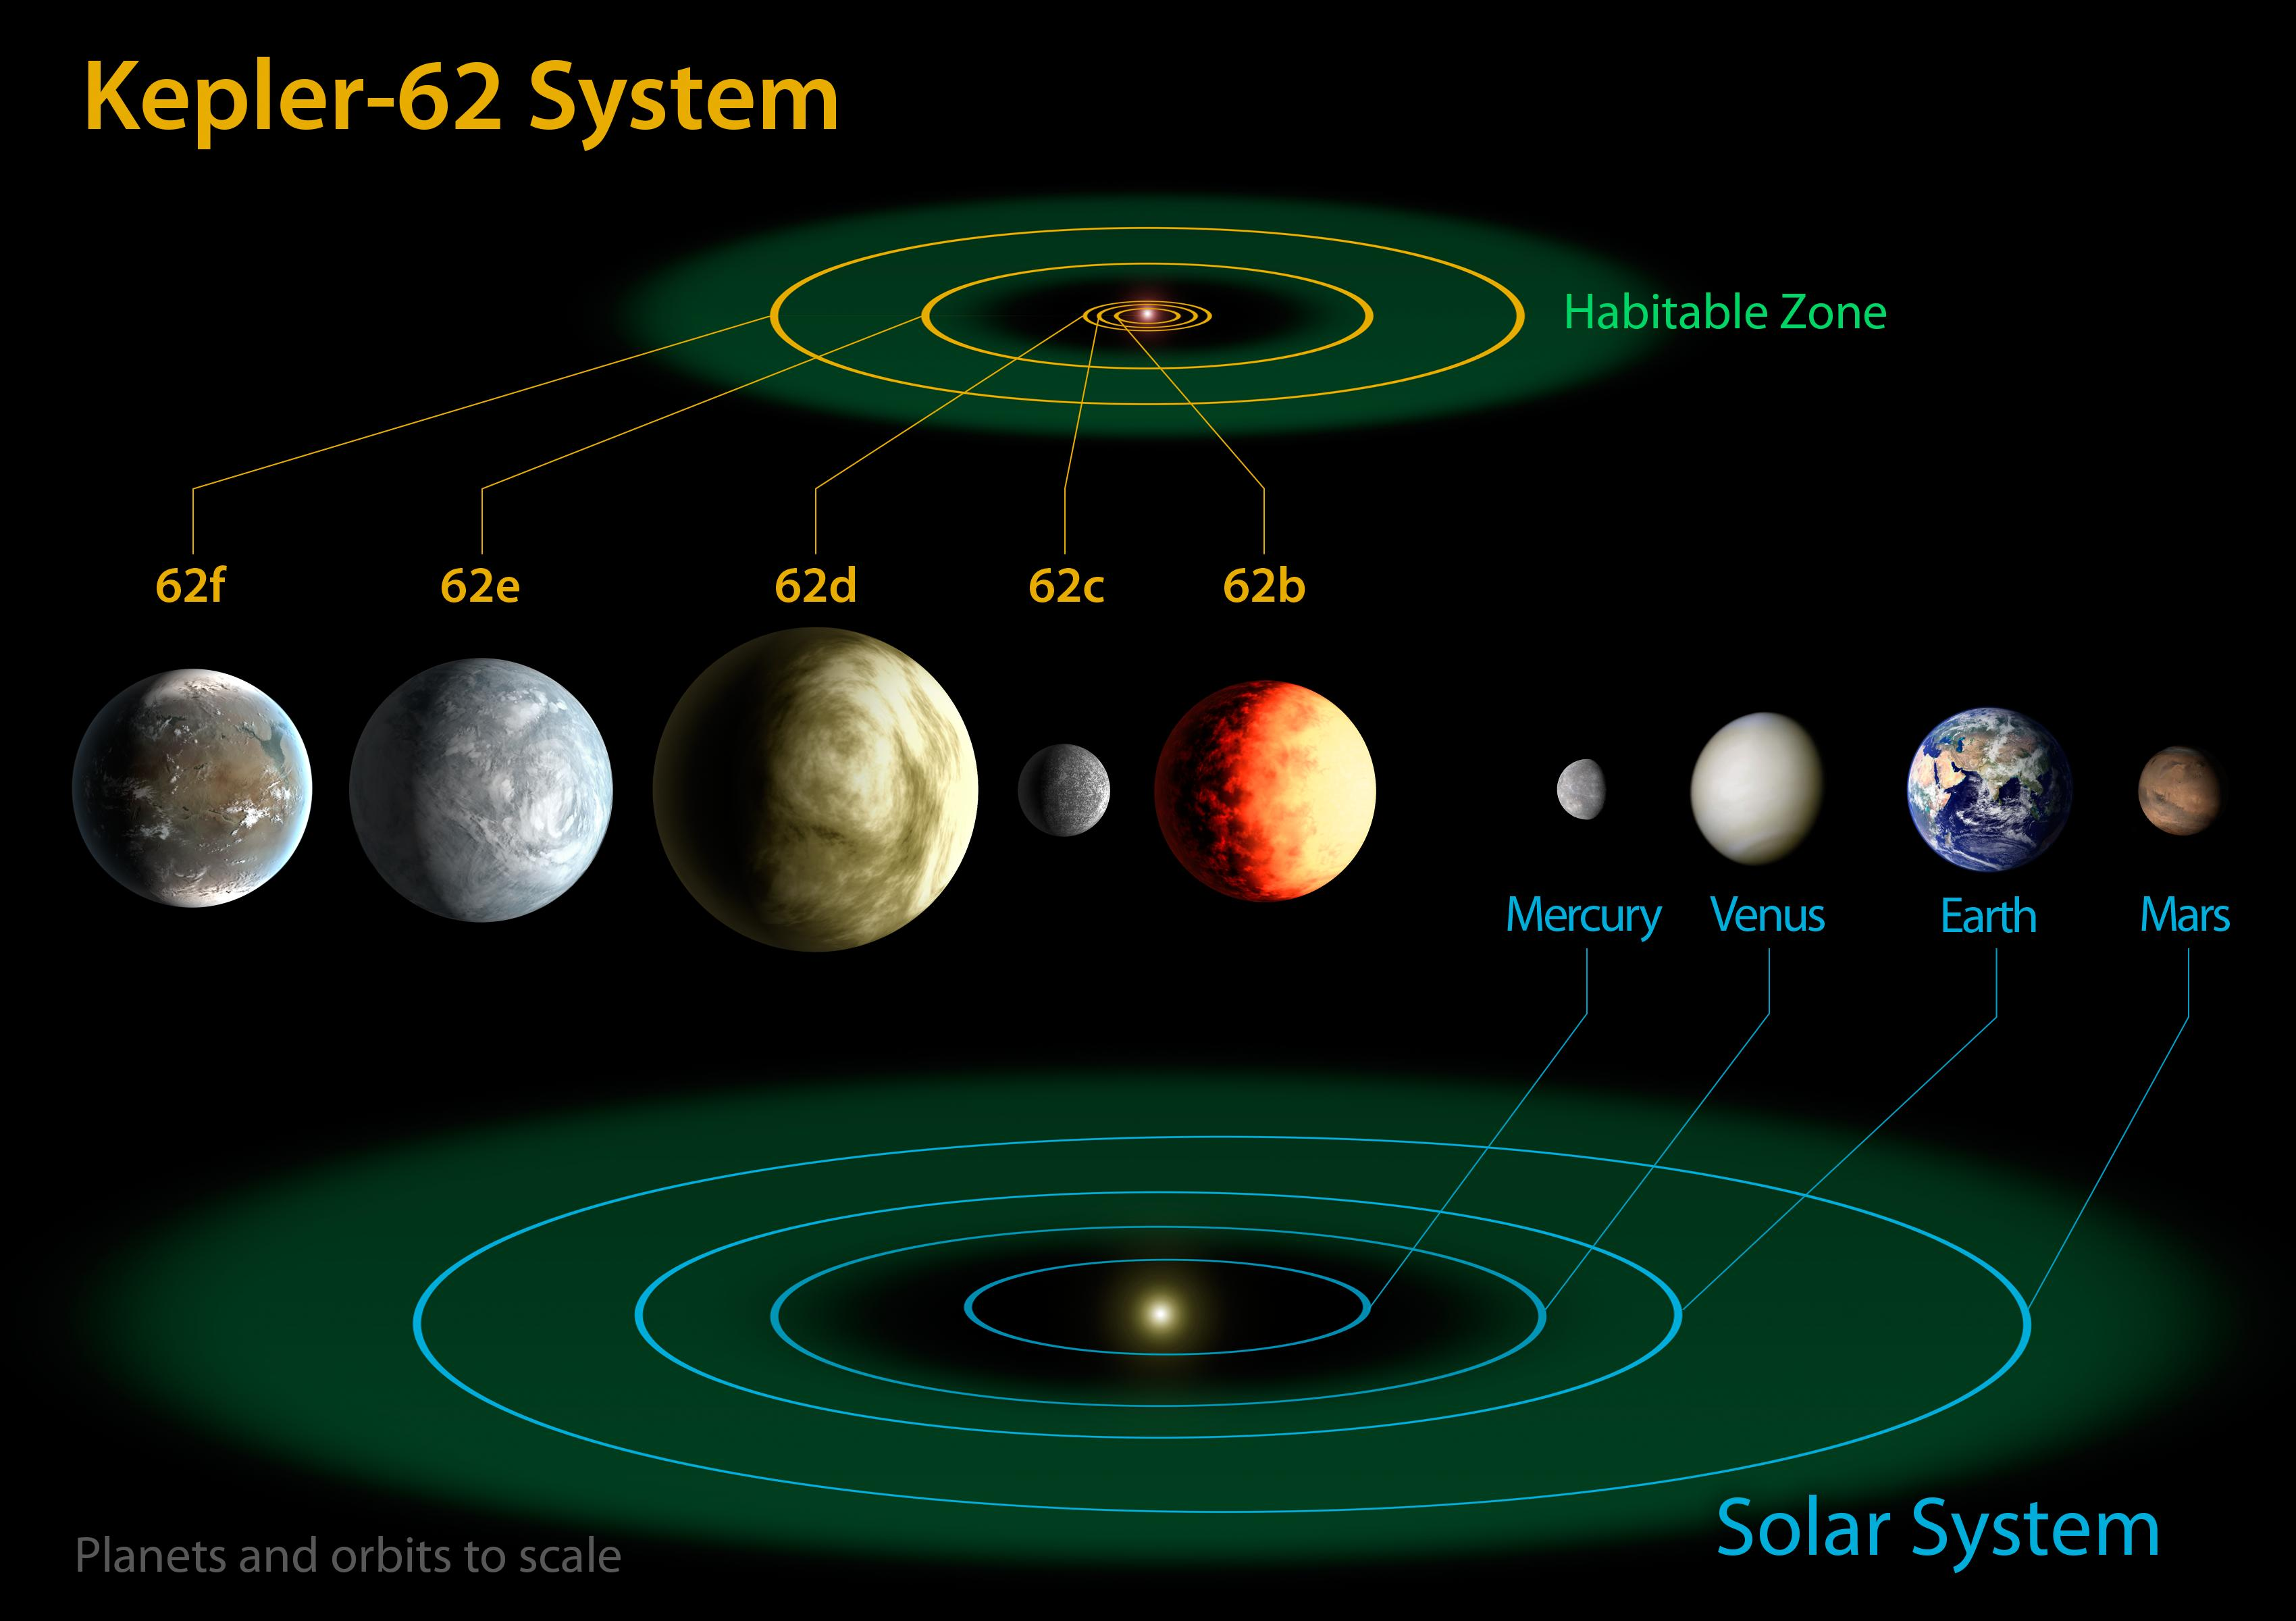 Space images kepler 62 and the solar system full res jpg sciox Choice Image